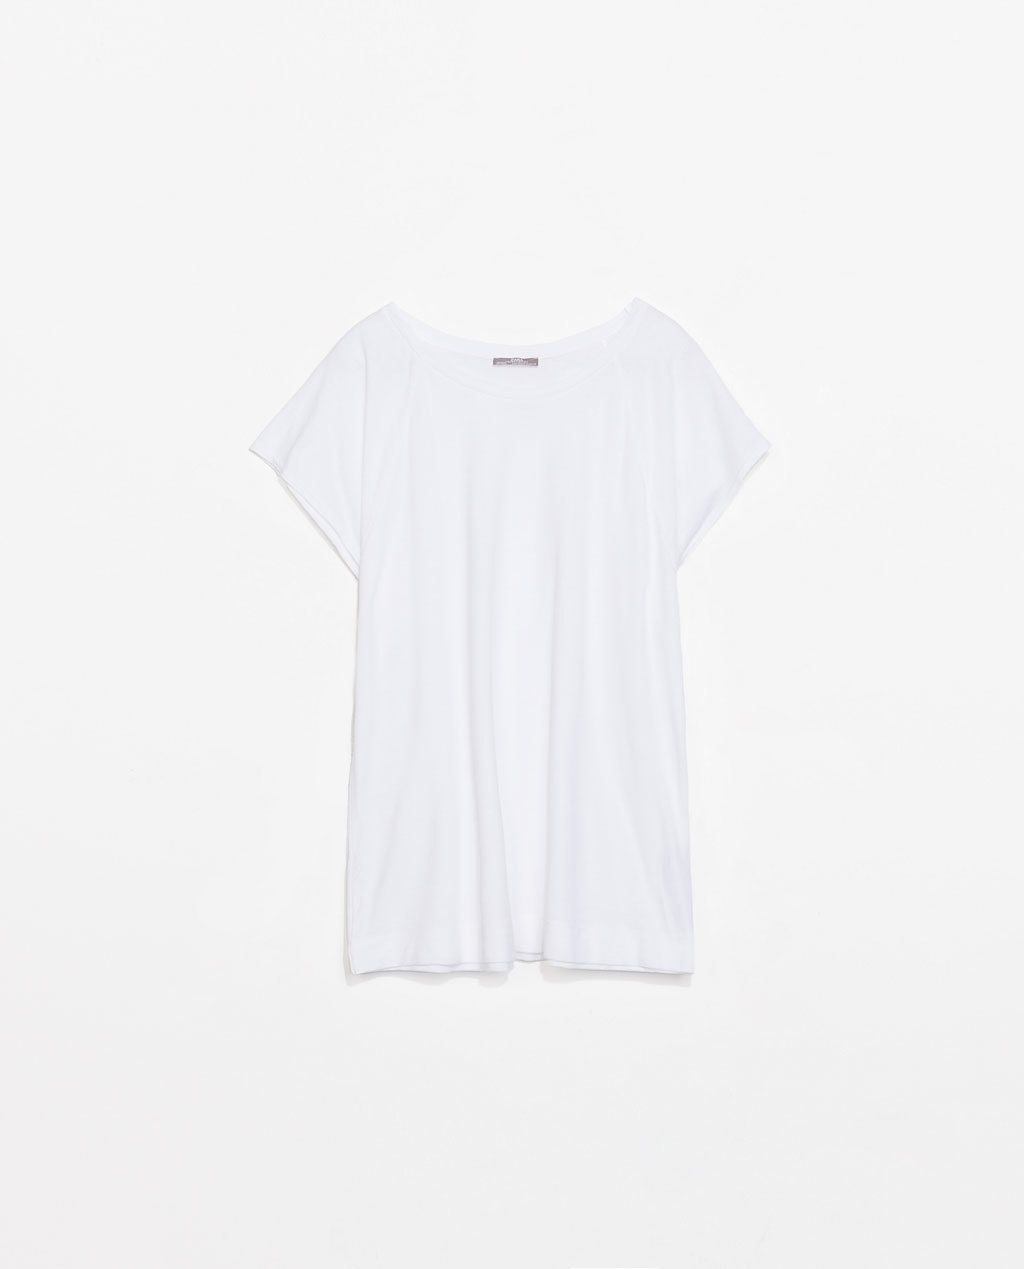 Raglan Sleeve T Shirt - neckline: round neck; pattern: plain; style: t-shirt; predominant colour: white; occasions: casual; length: standard; fibres: cotton - 100%; fit: loose; sleeve length: short sleeve; sleeve style: standard; pattern type: fabric; texture group: jersey - stretchy/drapey; season: s/s 2014